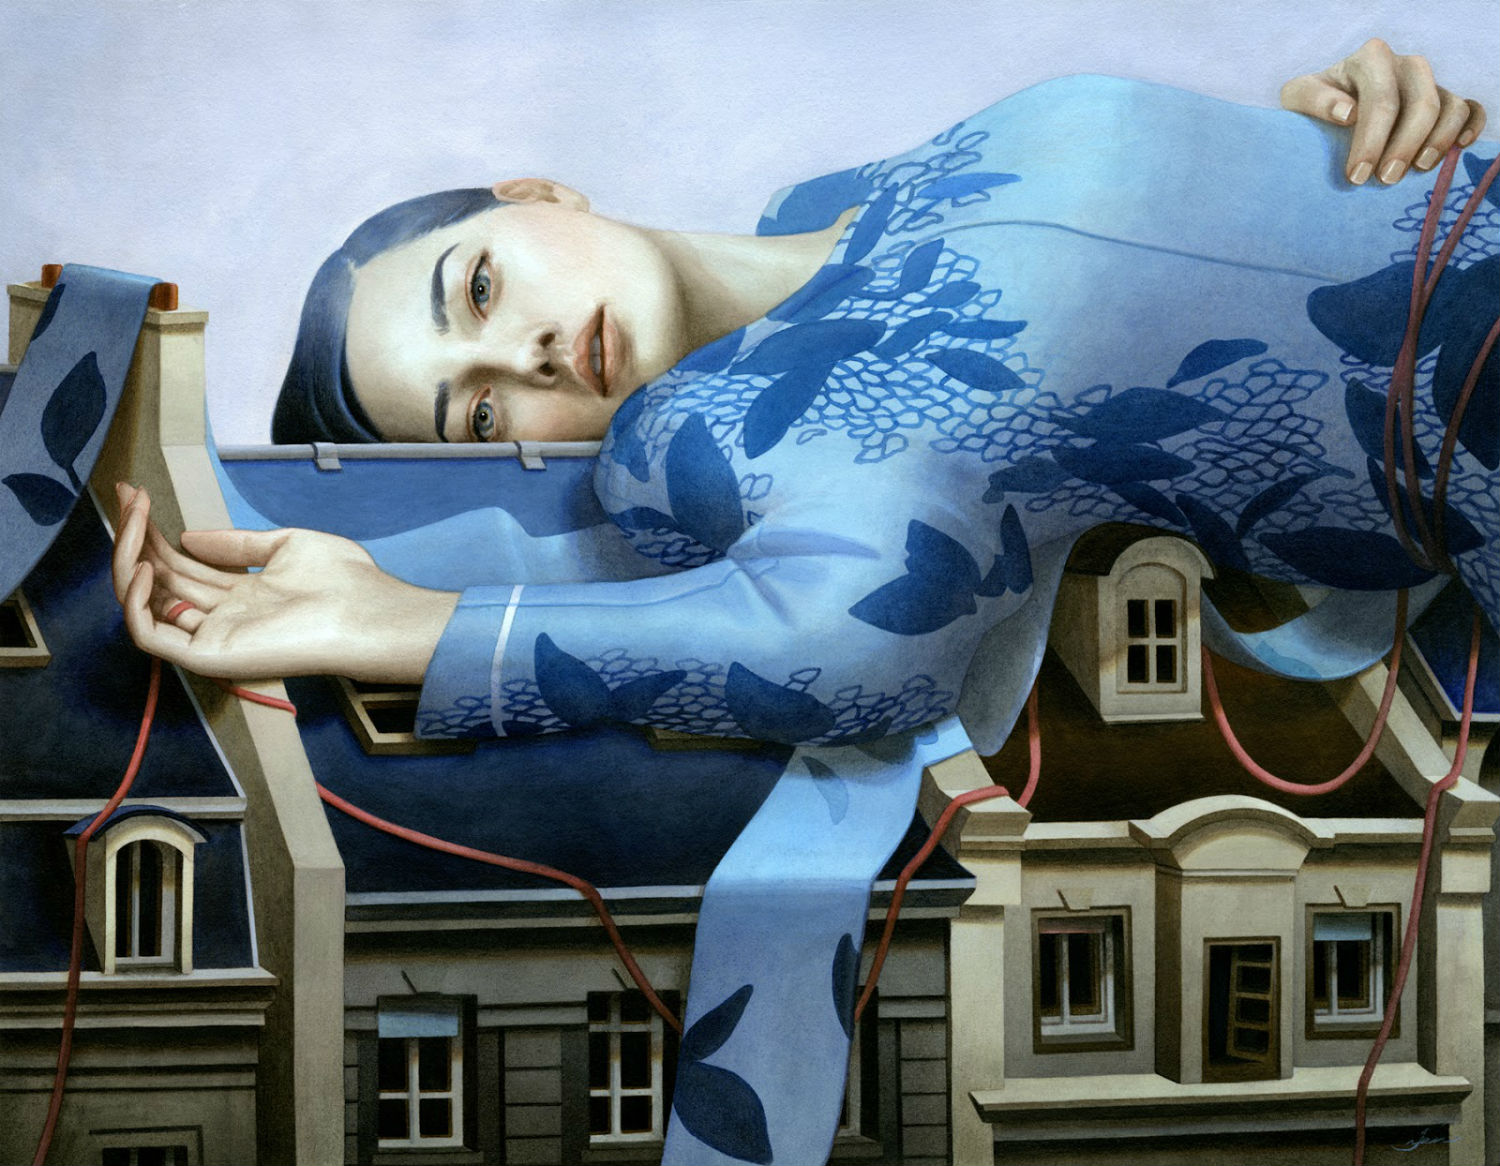 tran nguyen sleep girl blue dress